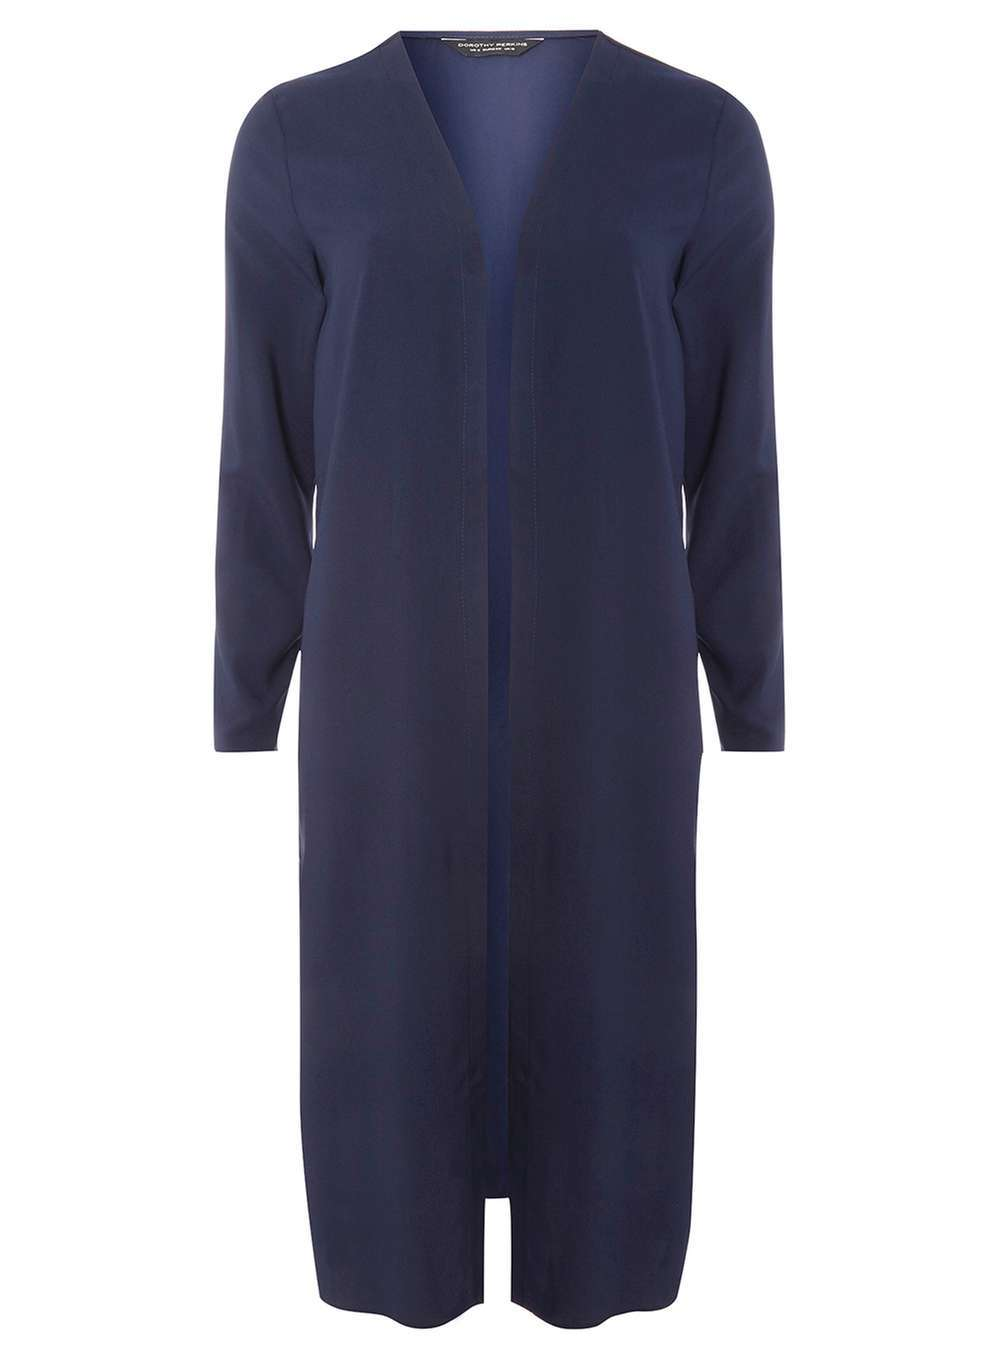 Womens Navy Maxi Cover Up Cardigan Blue - pattern: plain; neckline: collarless open; style: open front; predominant colour: navy; occasions: casual, work, creative work; length: calf length; fibres: polyester/polyamide - 100%; fit: loose; sleeve length: 3/4 length; sleeve style: standard; texture group: knits/crochet; pattern type: knitted - fine stitch; wardrobe: basic; season: a/w 2016